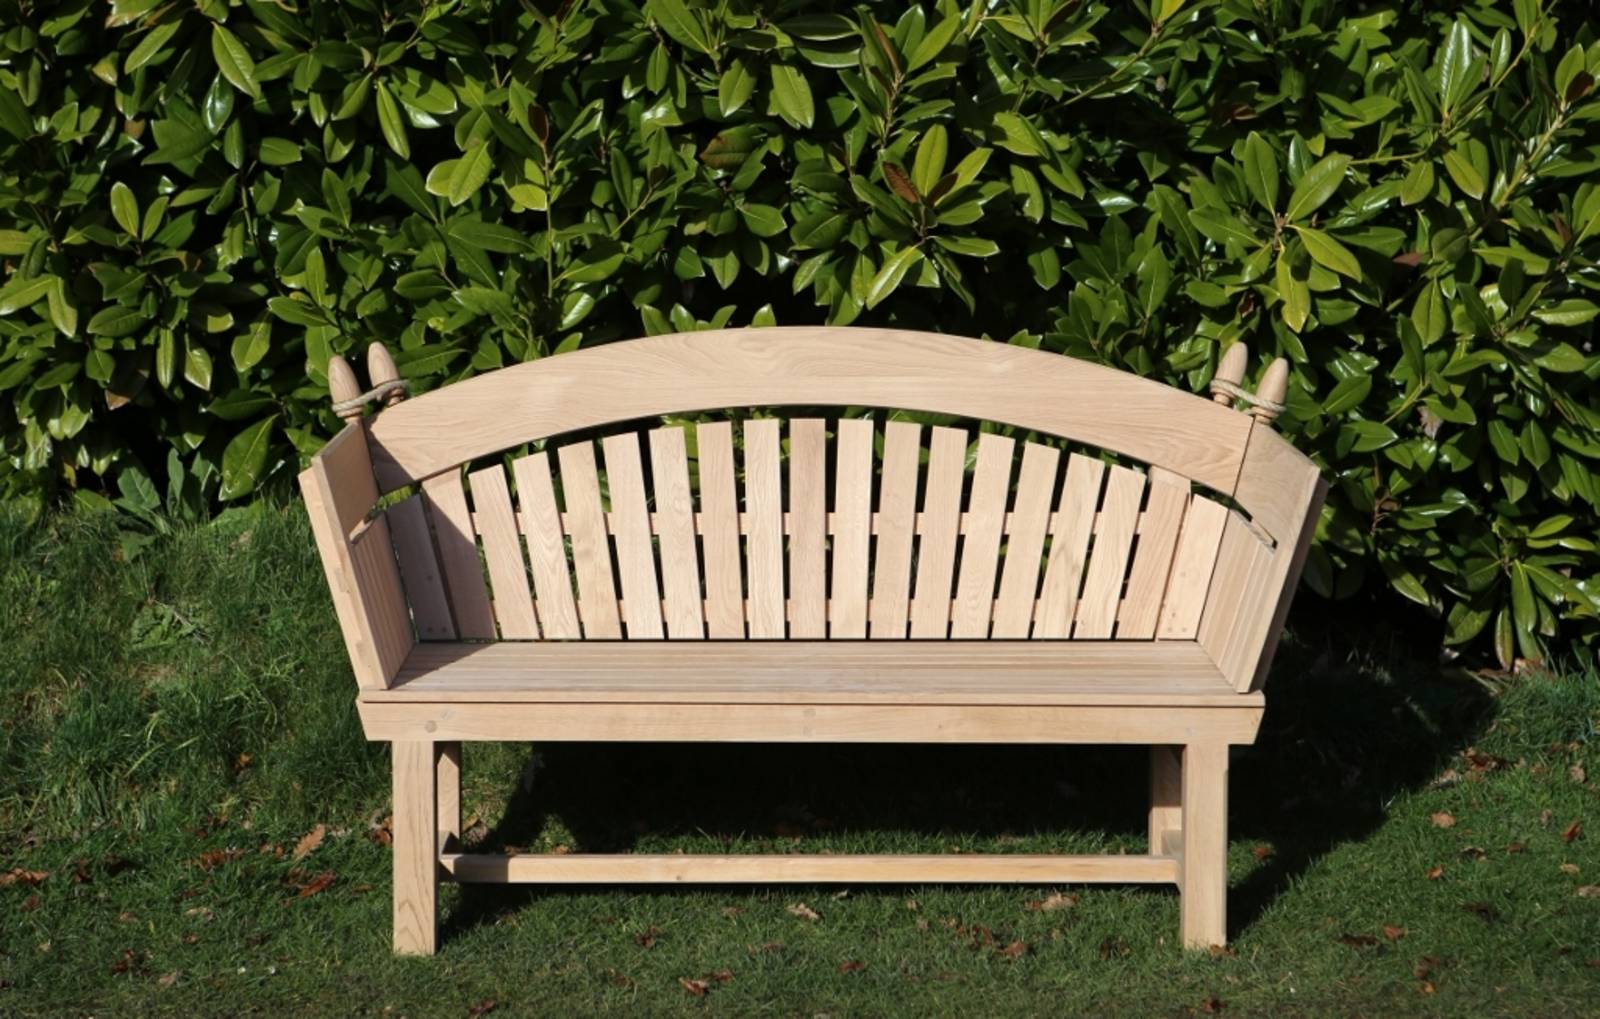 Knole Wooden Garden Bench against Magnolia